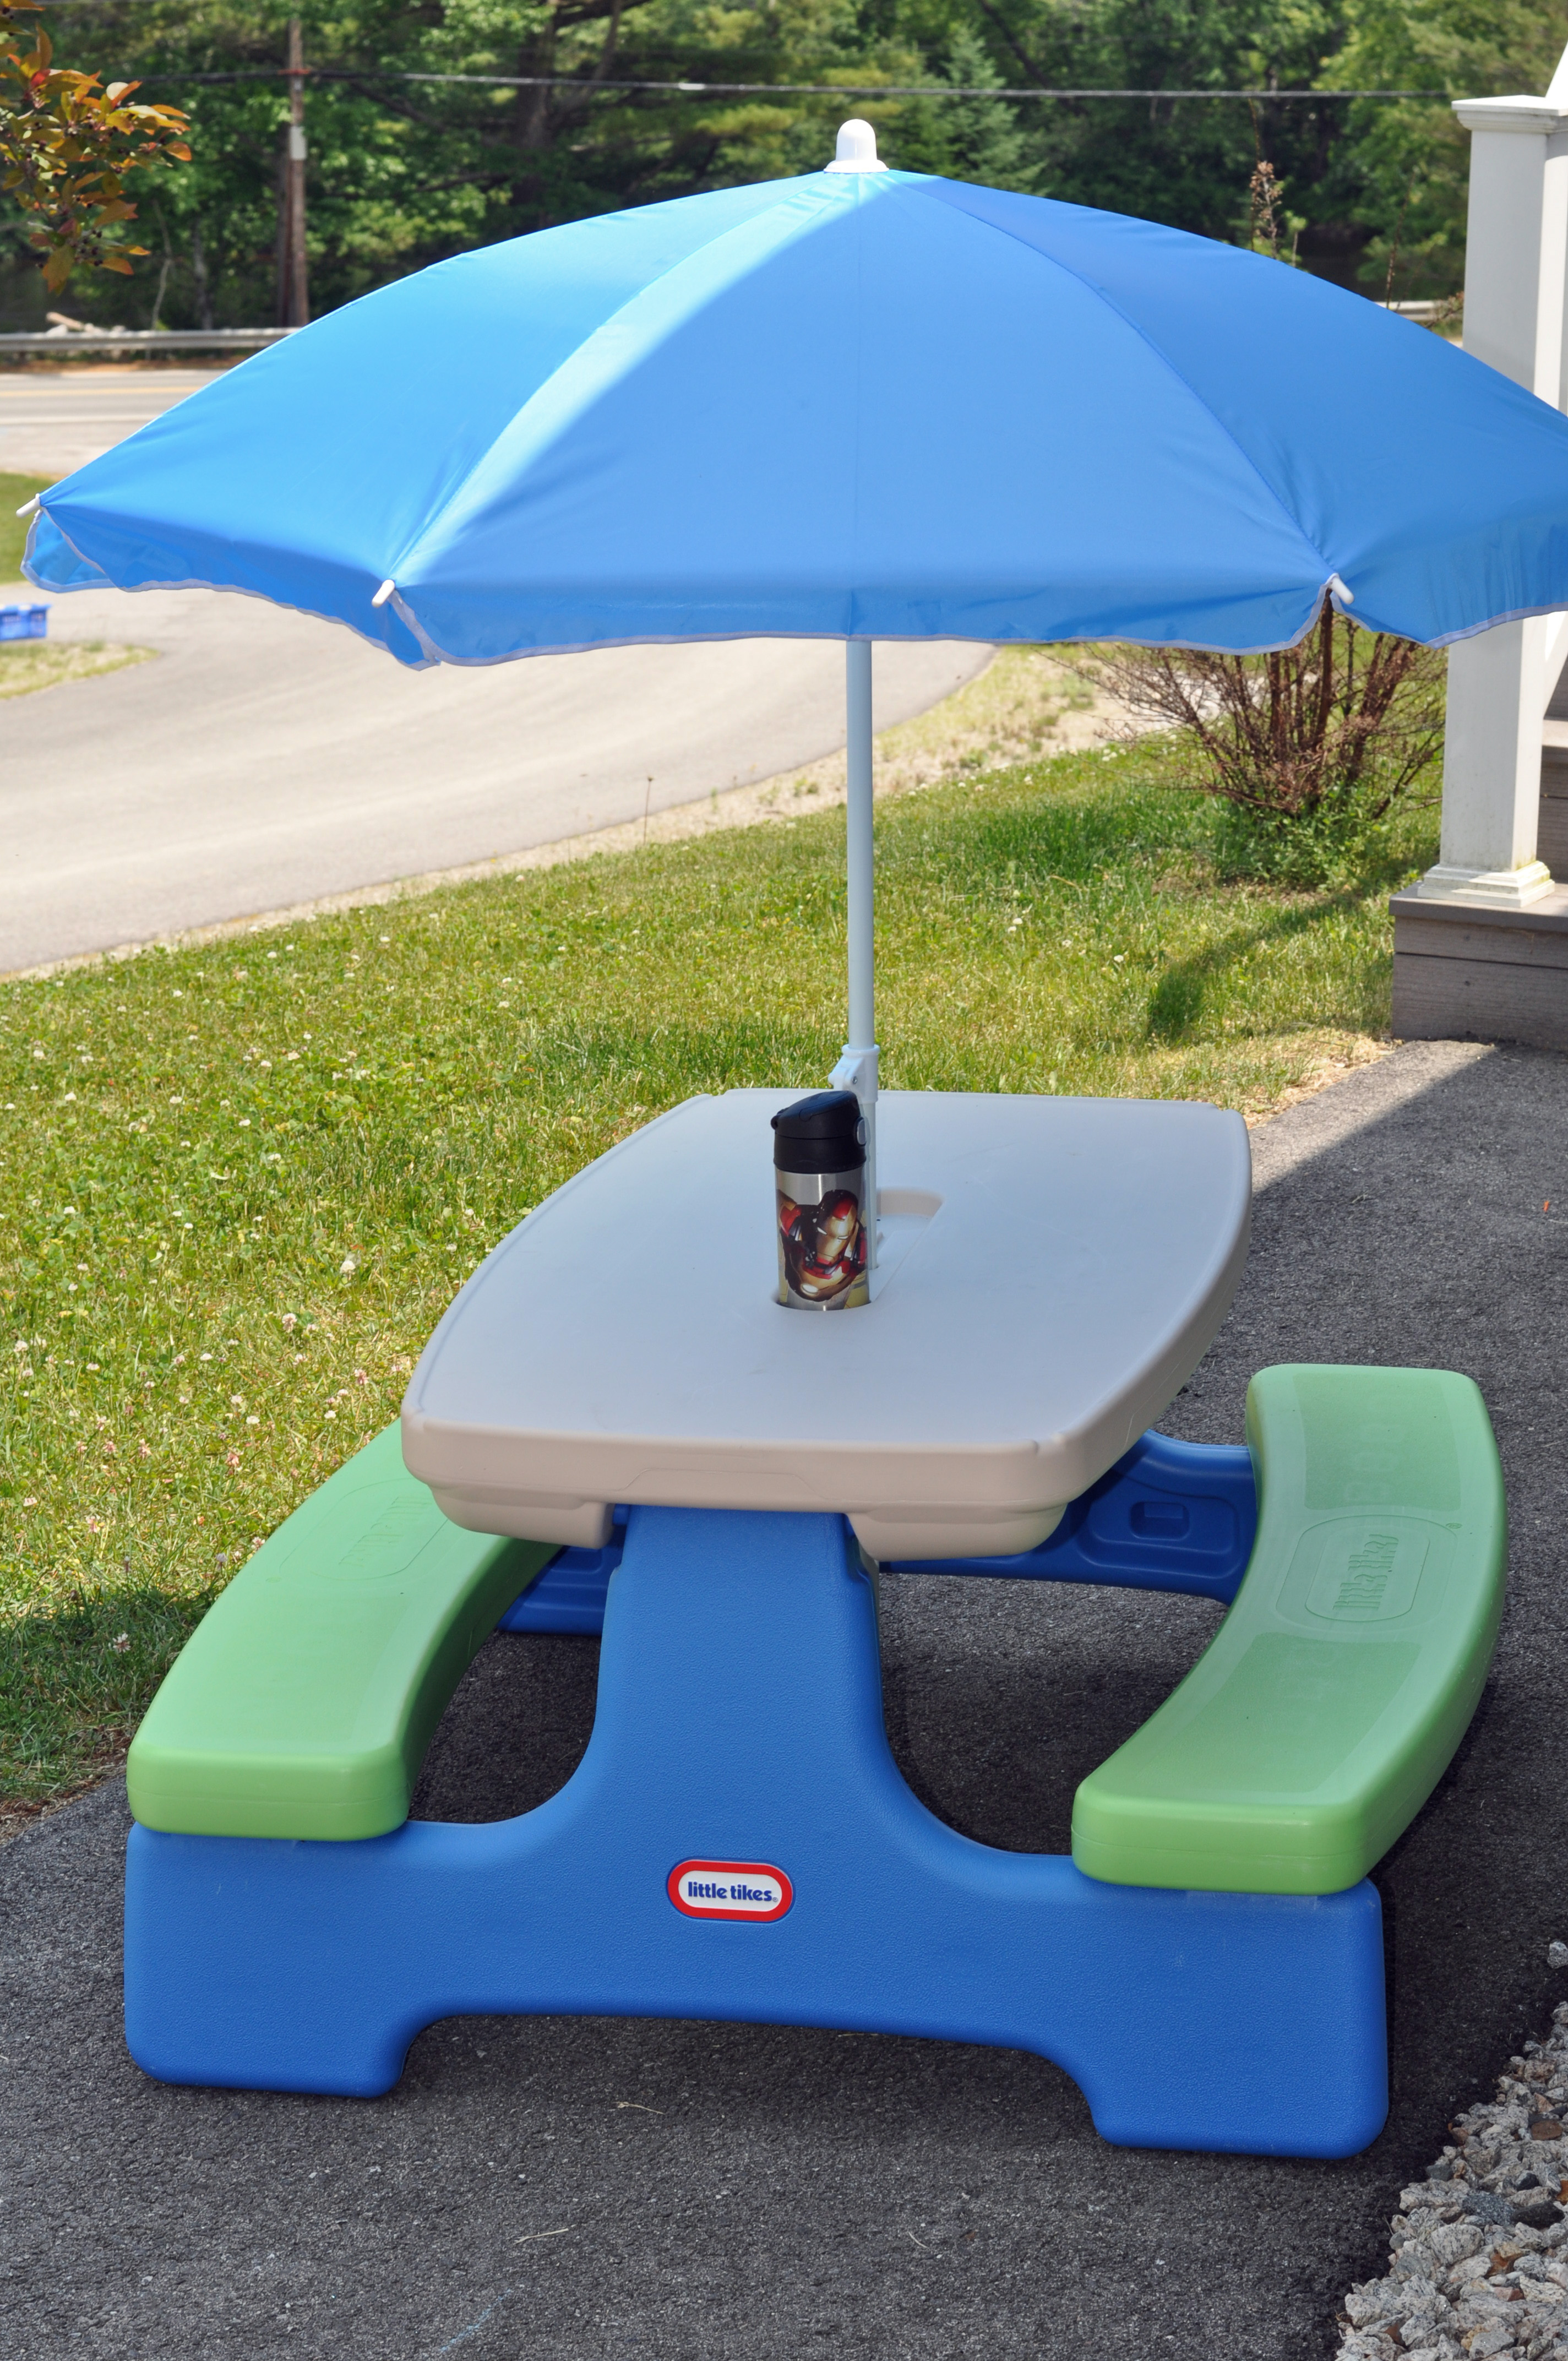 Mesmerizing Little Tikes Adjustable Picnic Table Gallery - Best ...